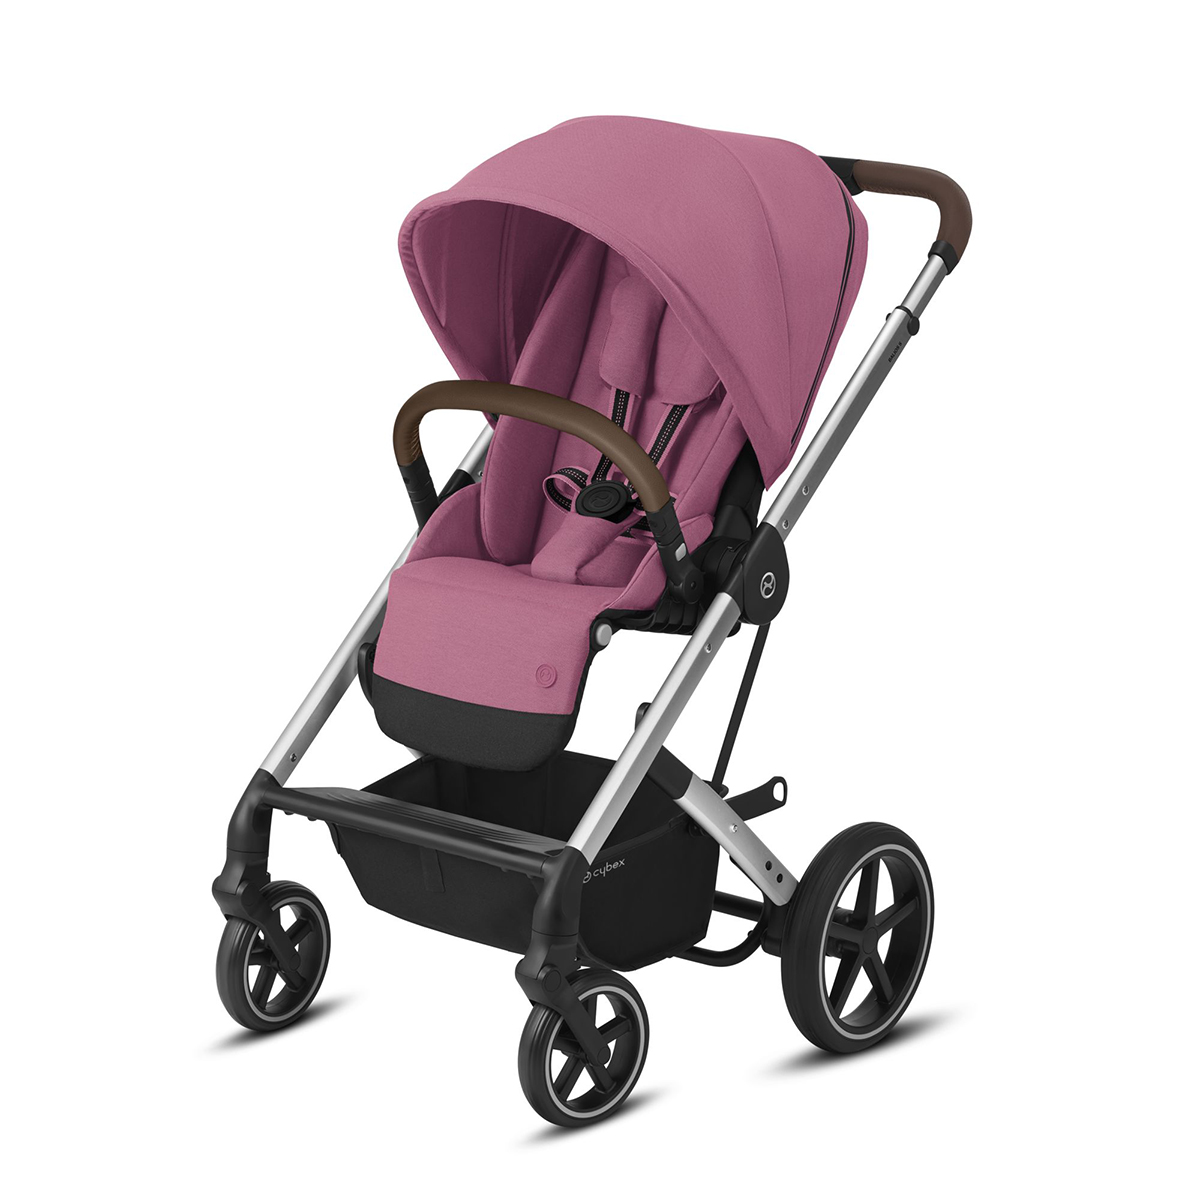 Poussette Buggy Cybex Balios S Lux - Silver Magnolia Pink